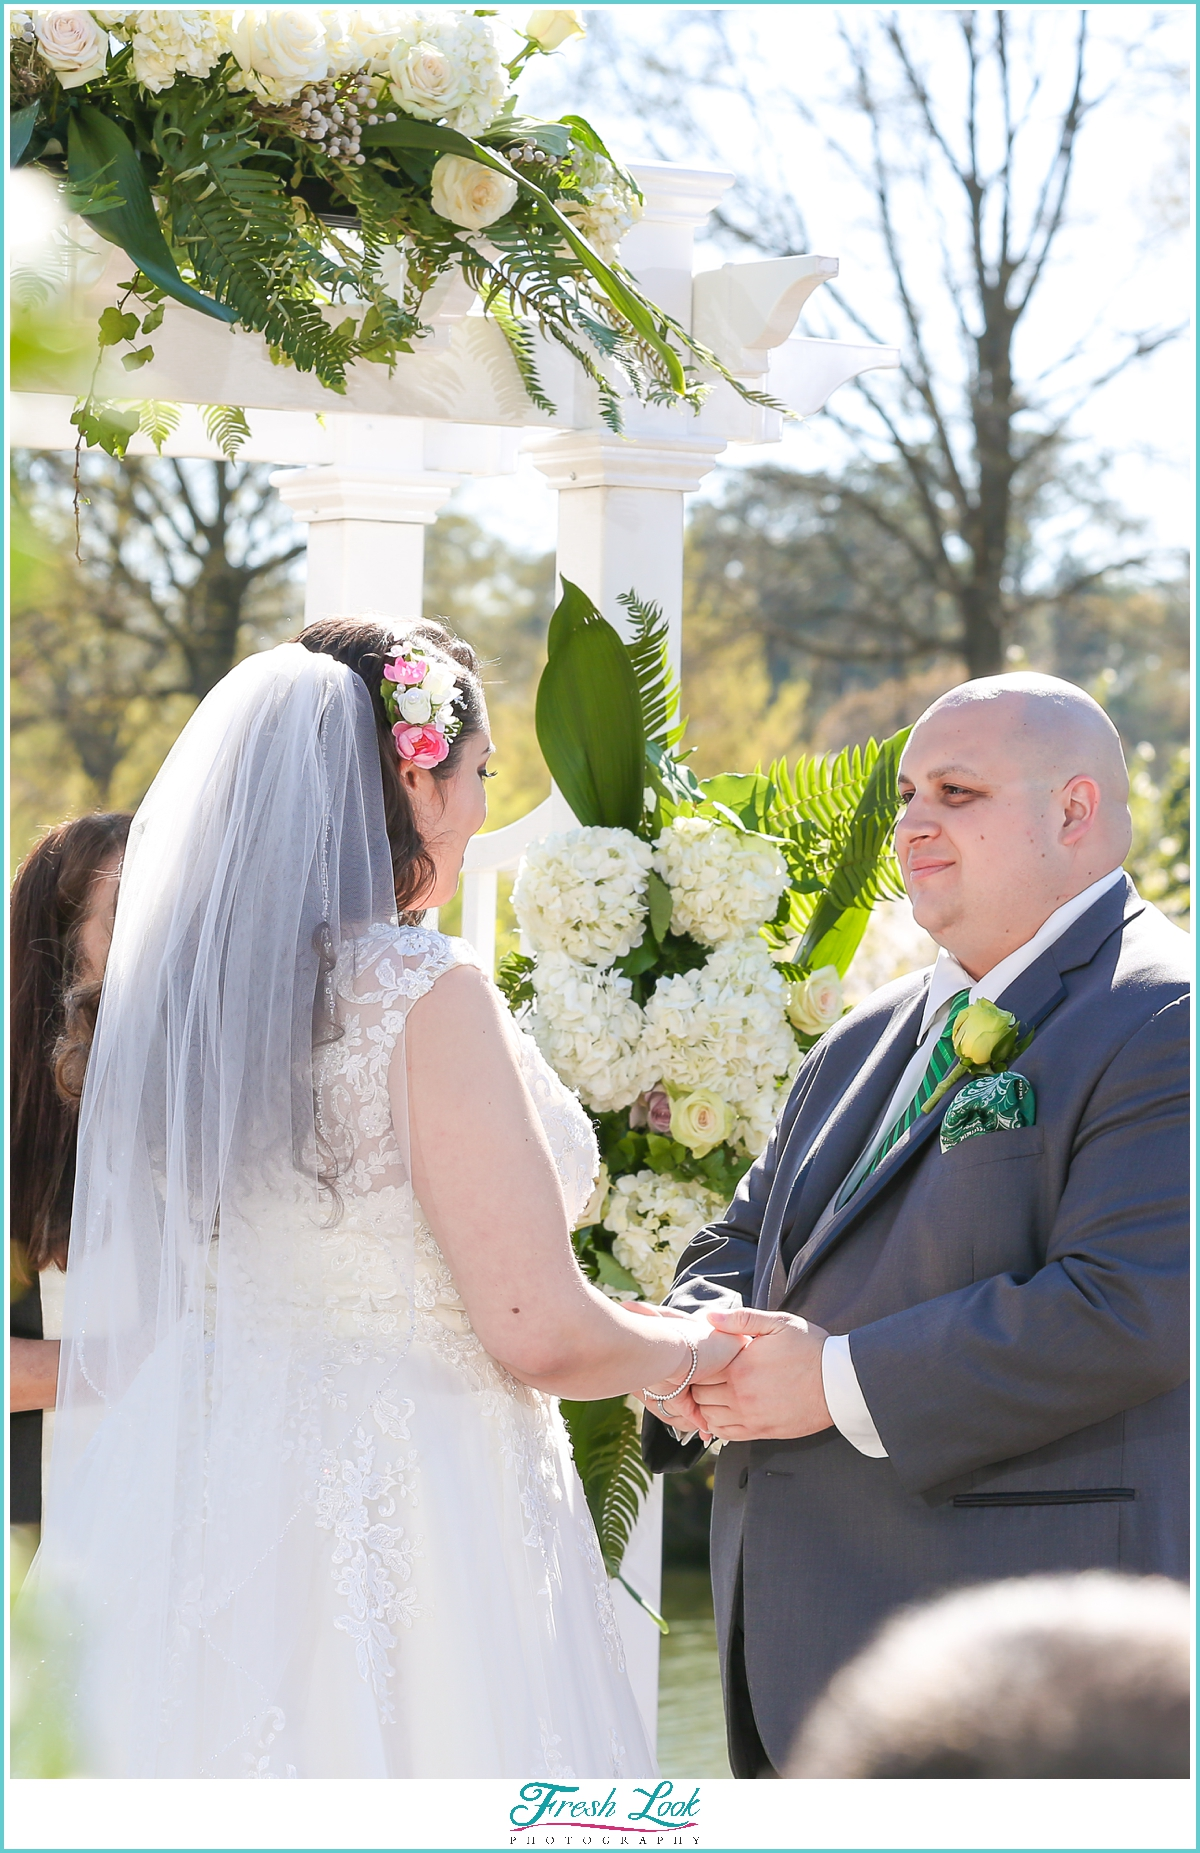 groom adoring his bride during the wedding